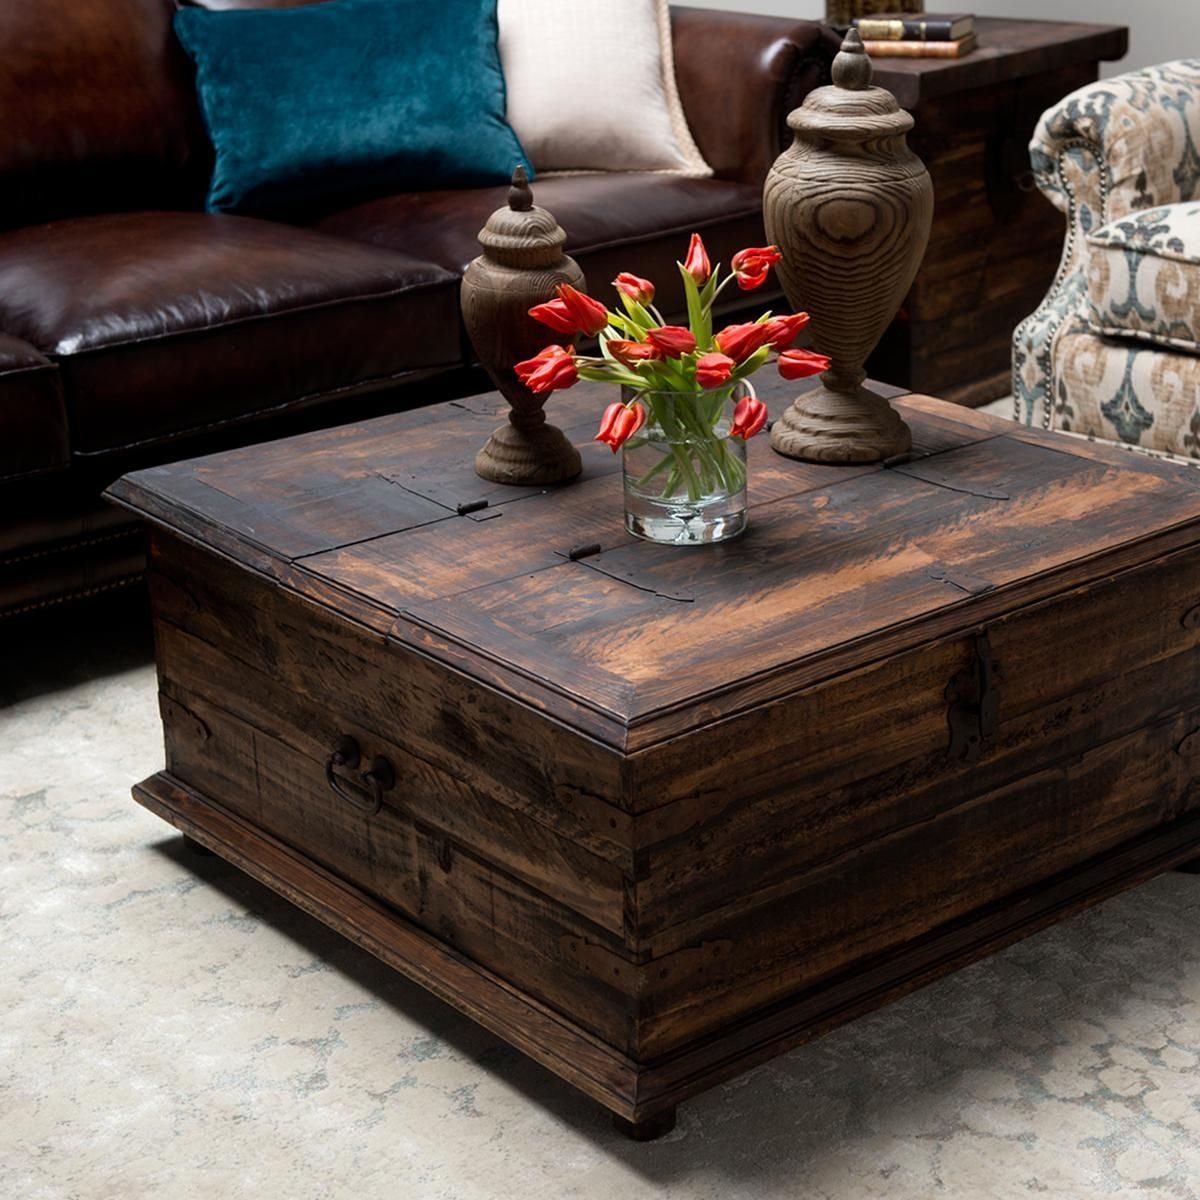 Wooden Trunk Coffee Table Plans httptherapybychancecom